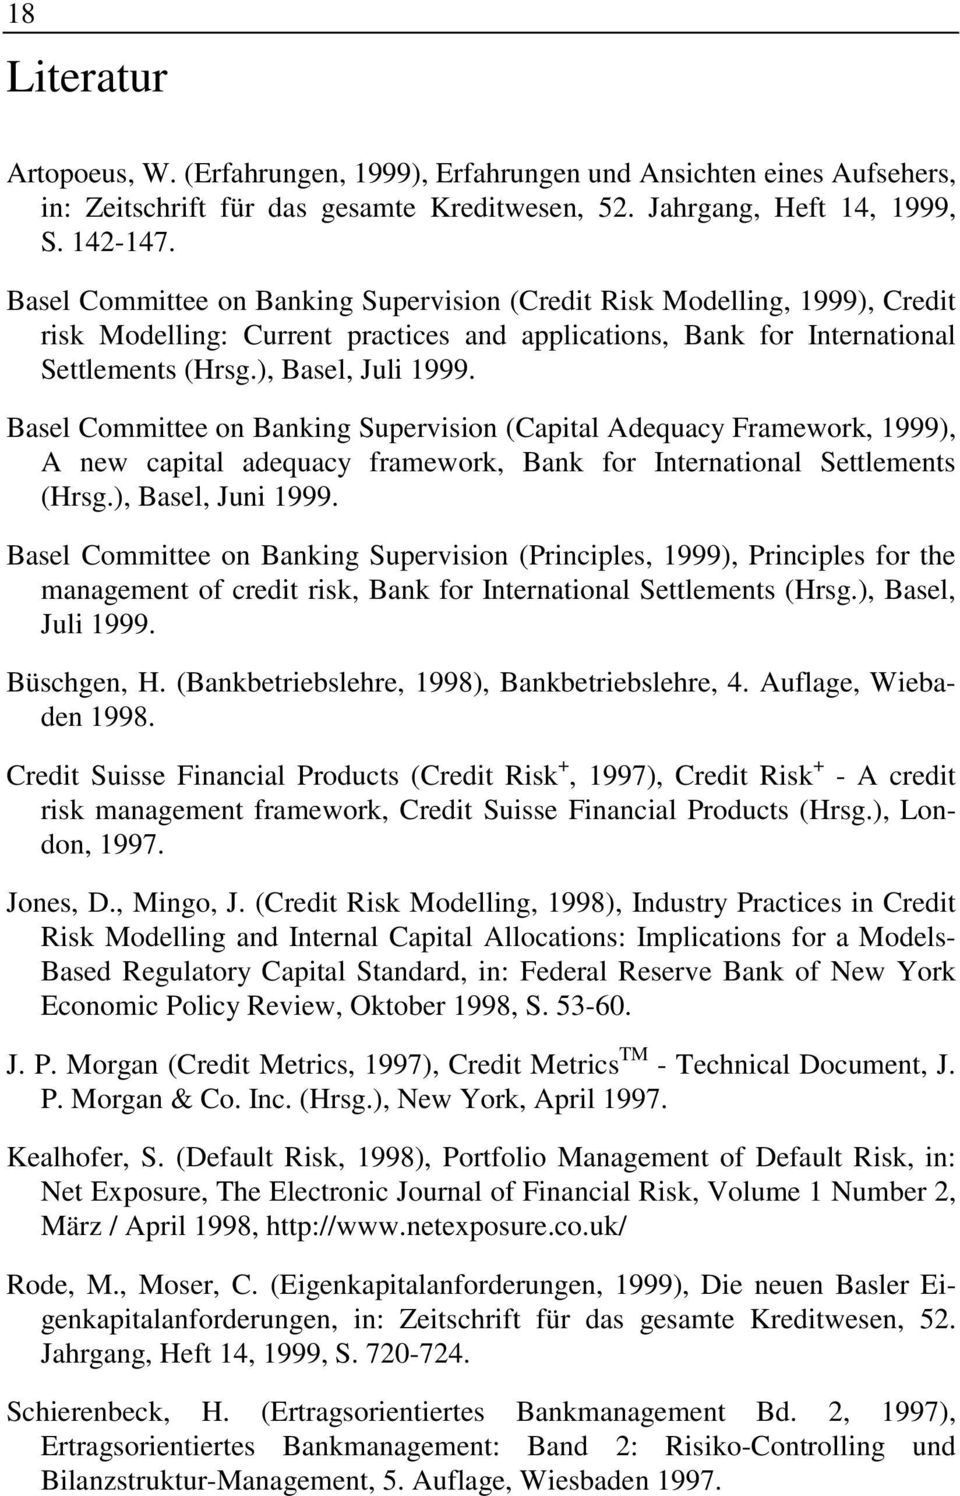 Basel Committee on Banking Supervision (Capital Adequacy Framework, 1999), A new capital adequacy framework, Bank for International Settlements (Hrsg.), Basel, Juni 1999.